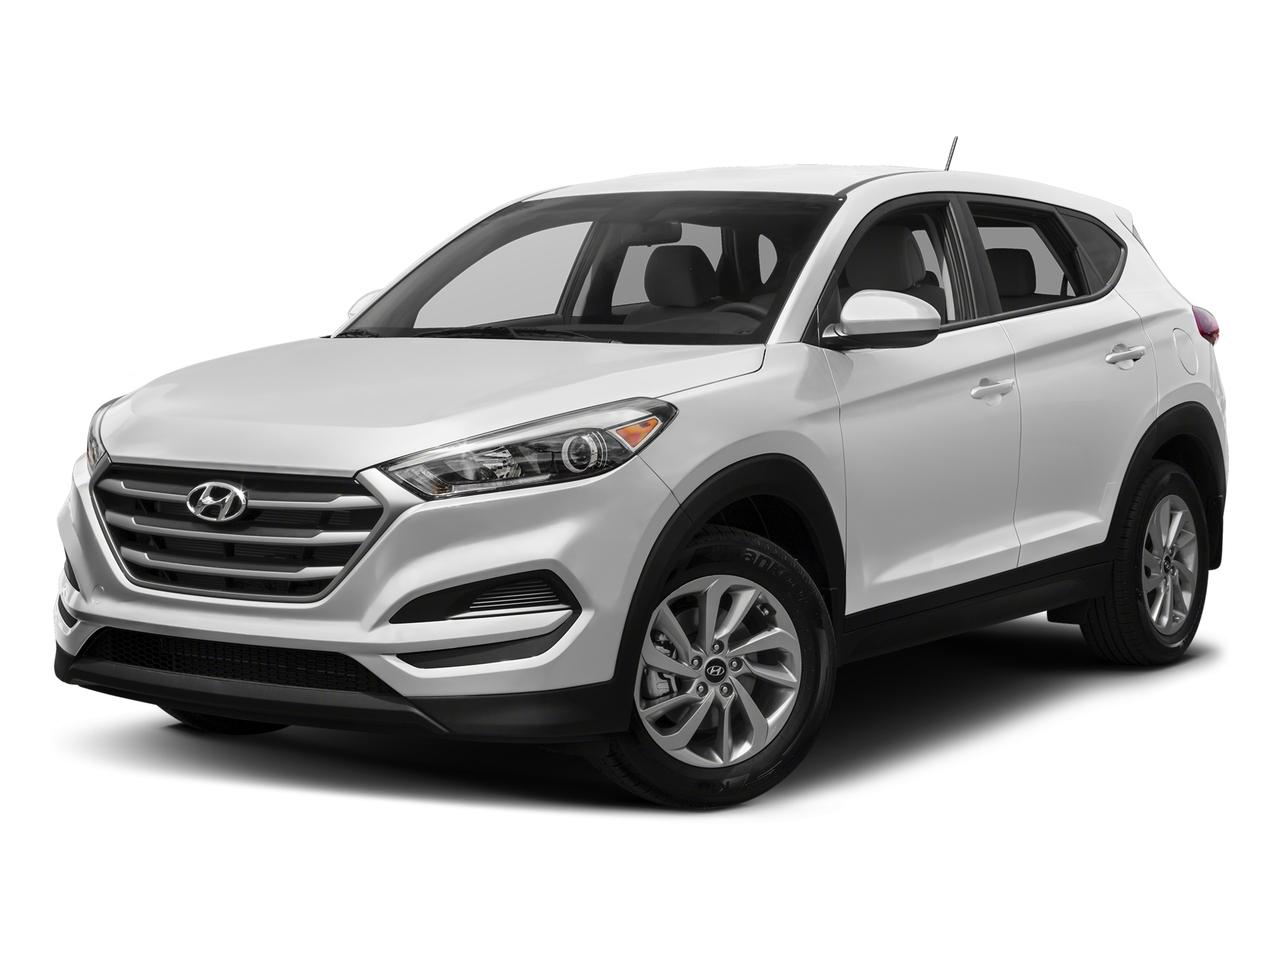 2017 Hyundai Tucson Vehicle Photo in Baltimore, MD 21207